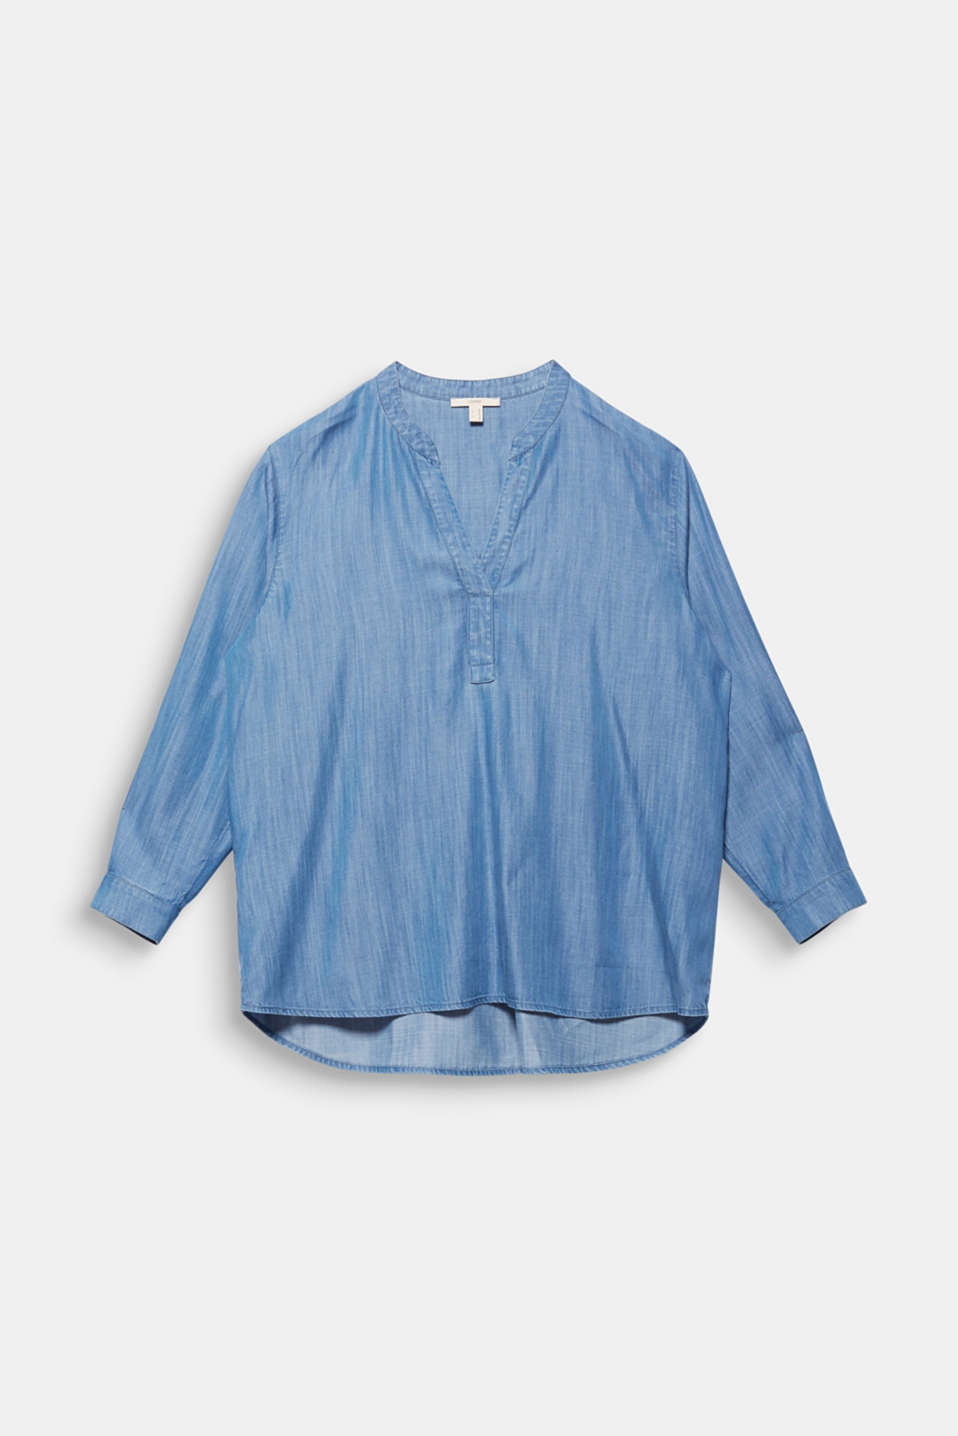 CURVY: Denim-look Henley blouse made of TENCEL™, BLUE LIGHT WASH, detail image number 6